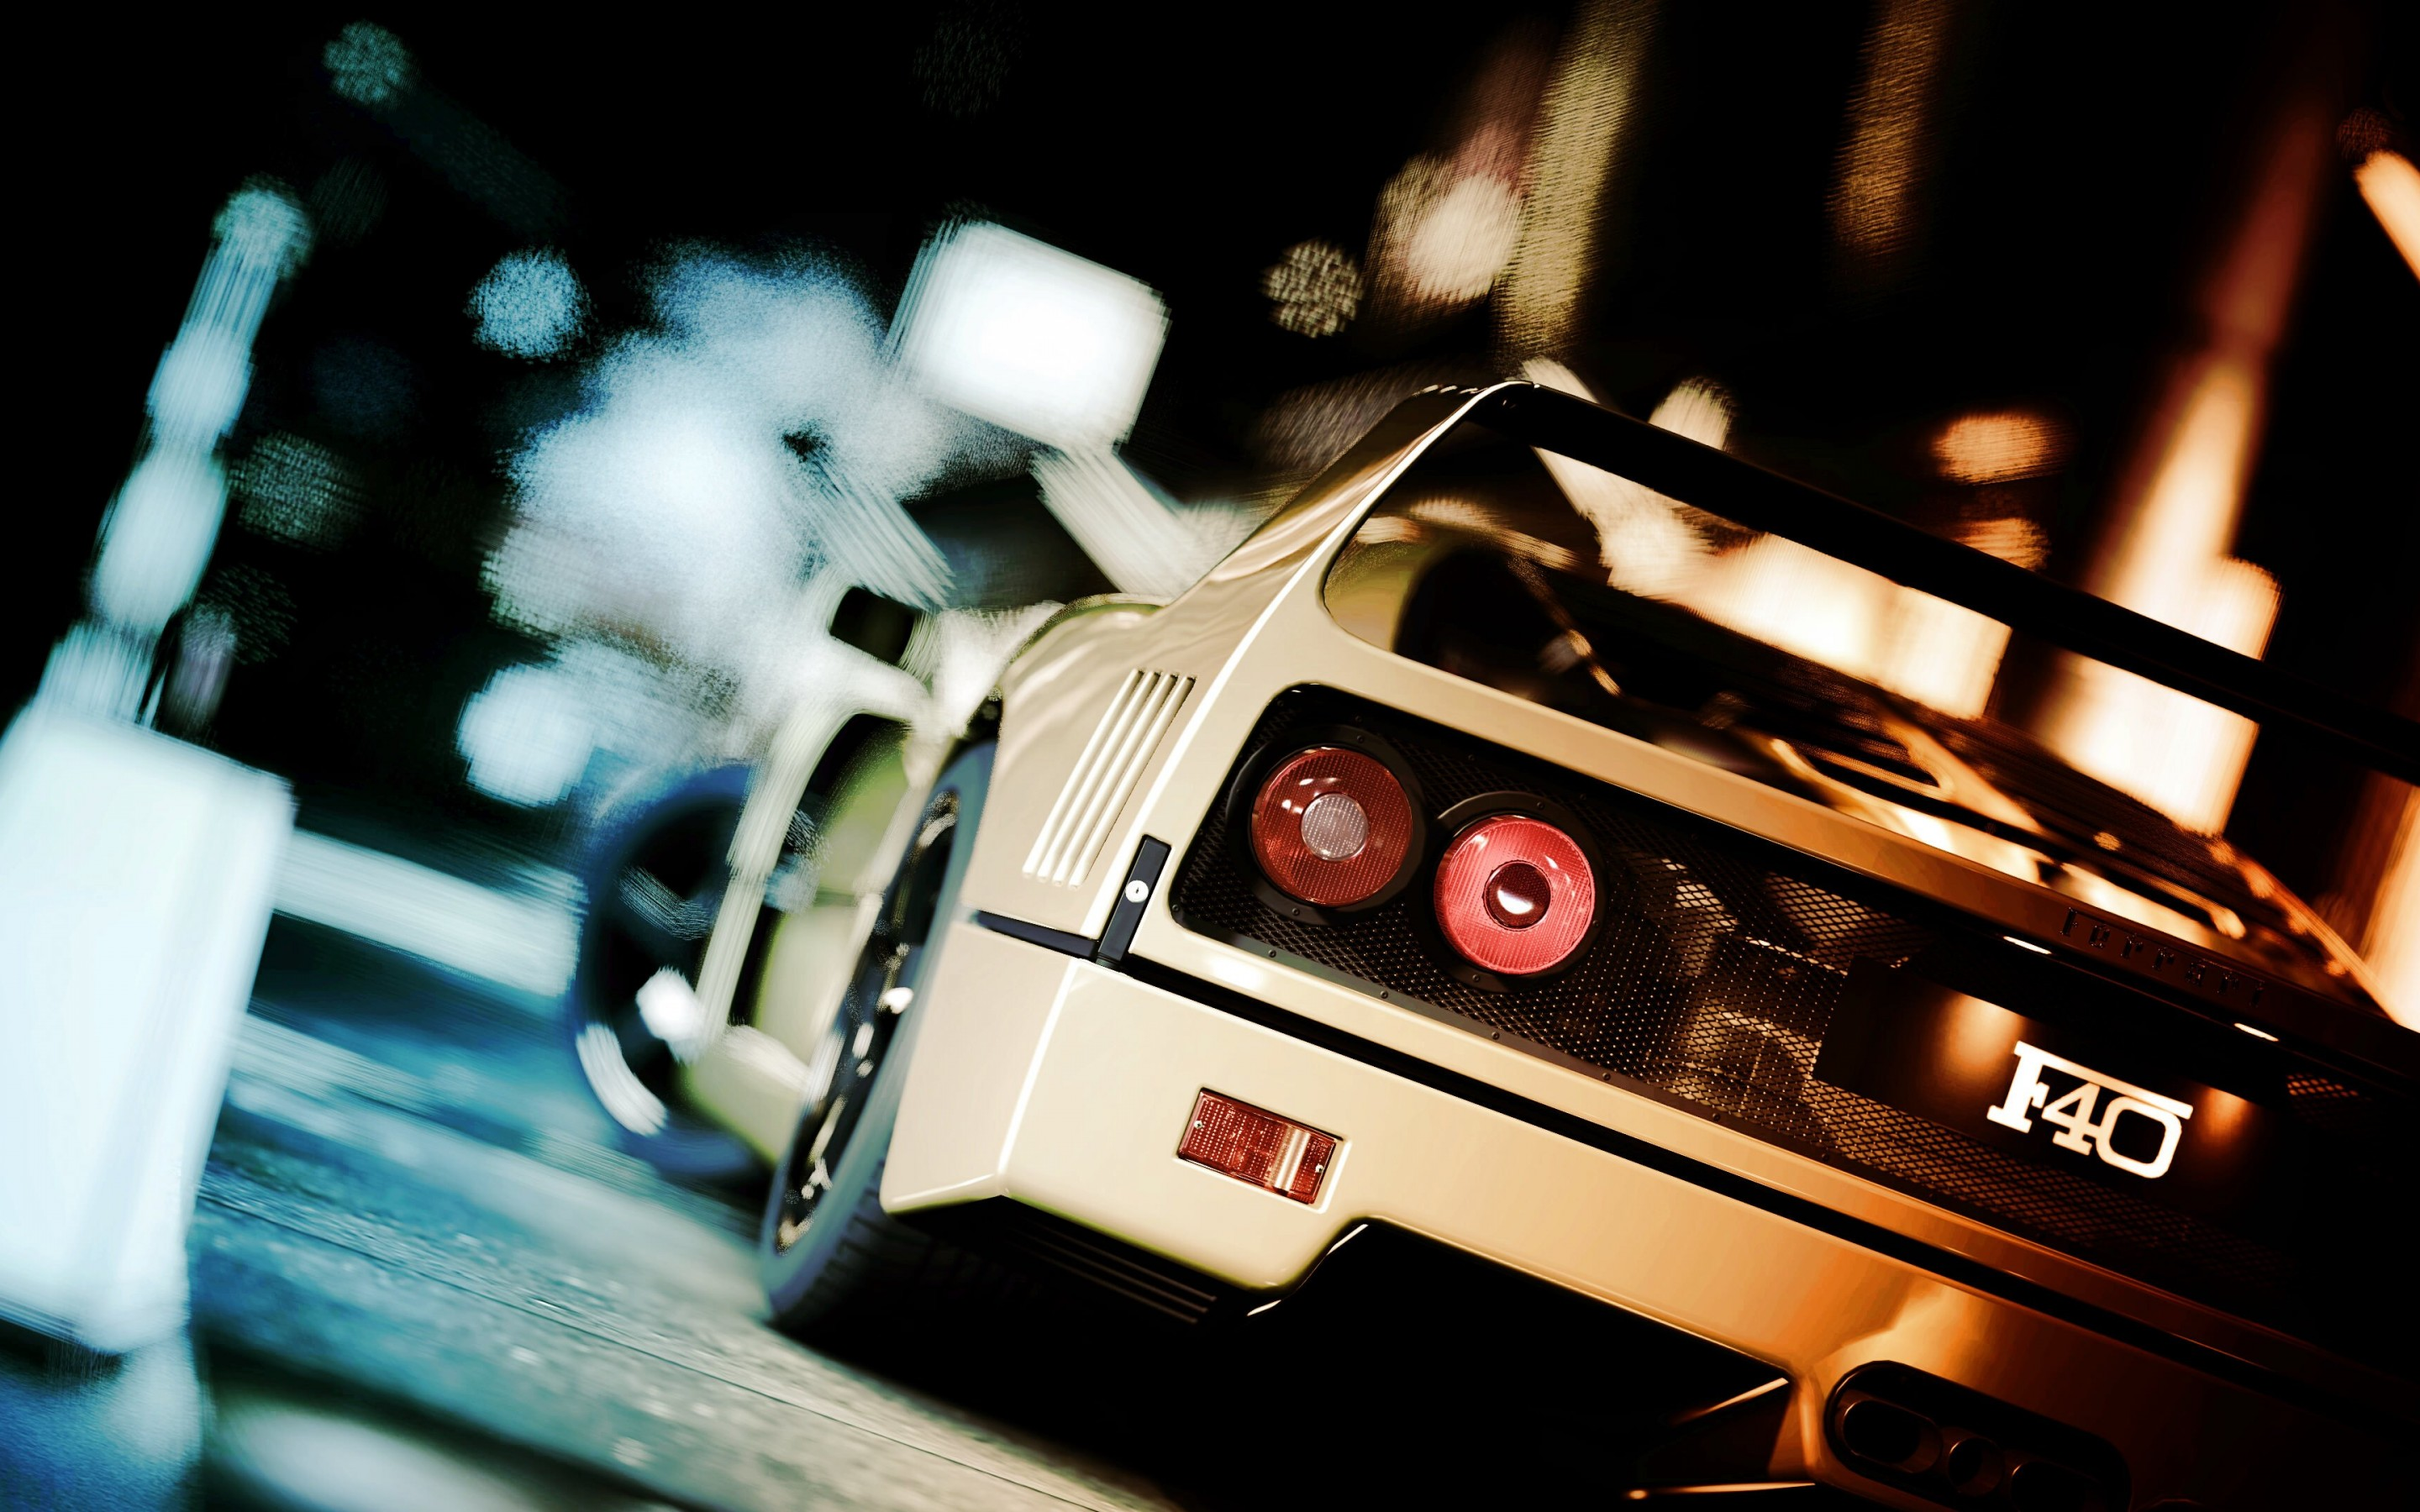 Ferrari F40 Gran Turismo Wallpaper for Desktop 2880x1800